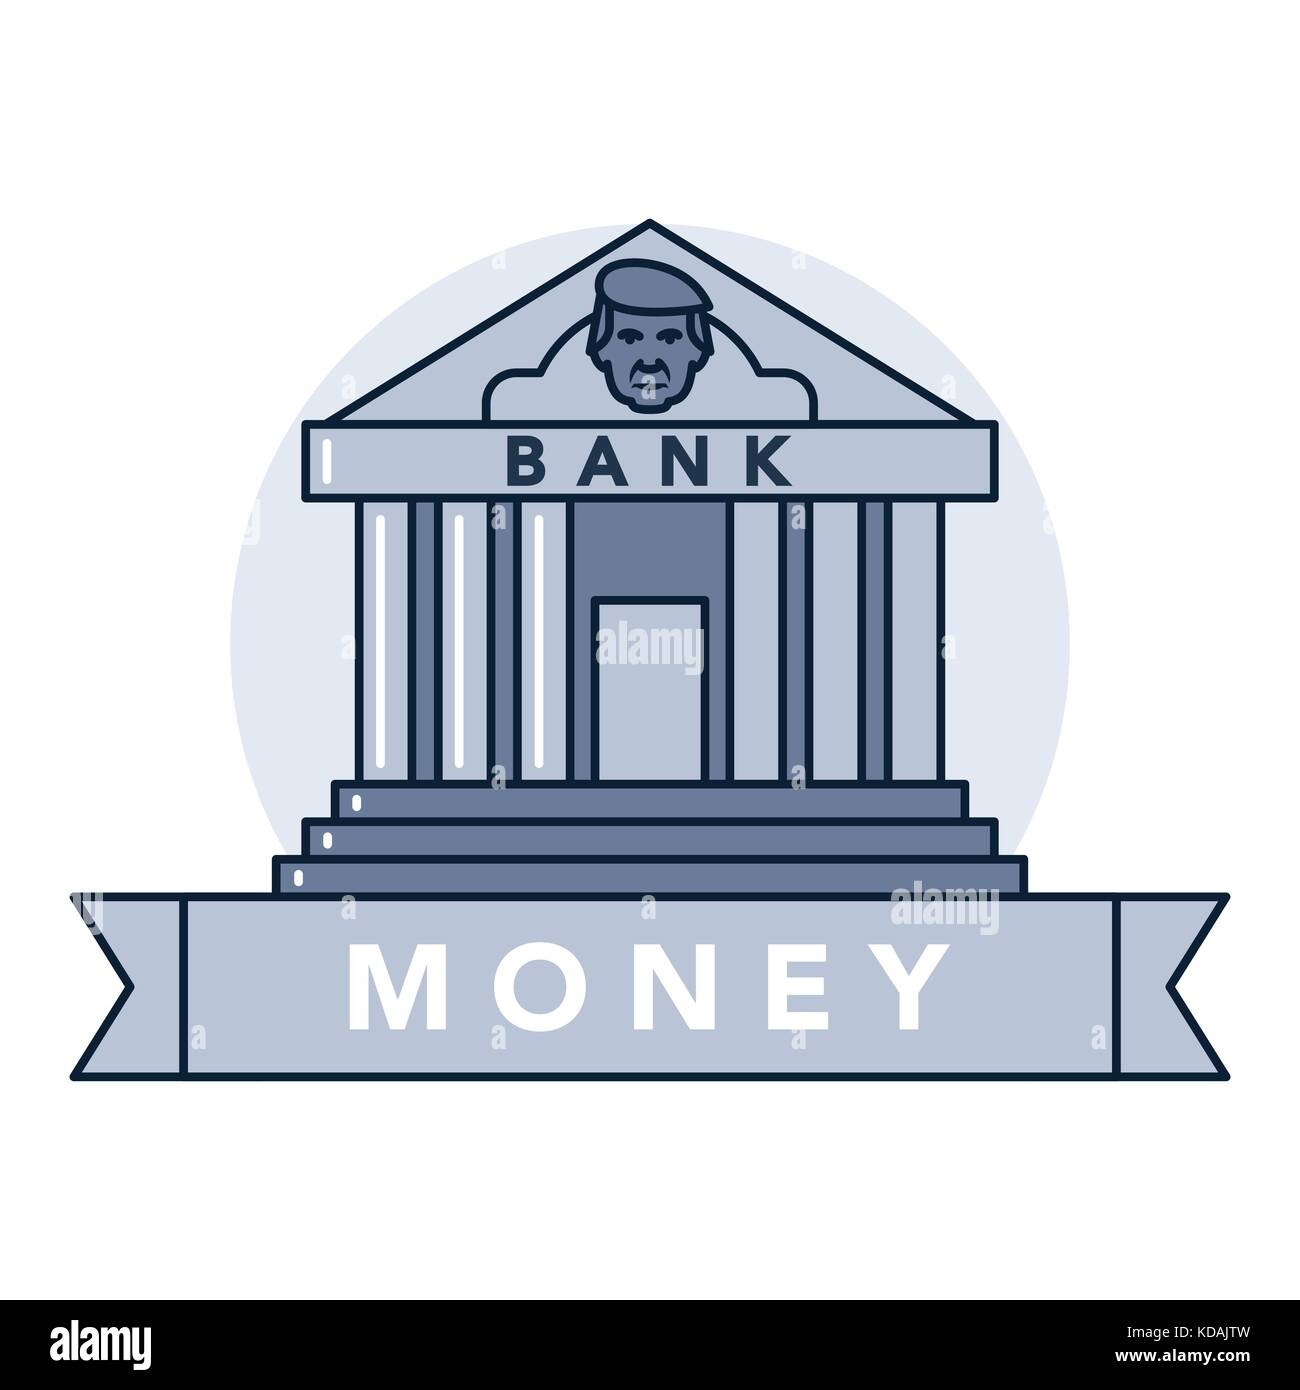 Vector illustration of a bank safe on white background with lettering. Money and financial institutions topic. Stock Vector